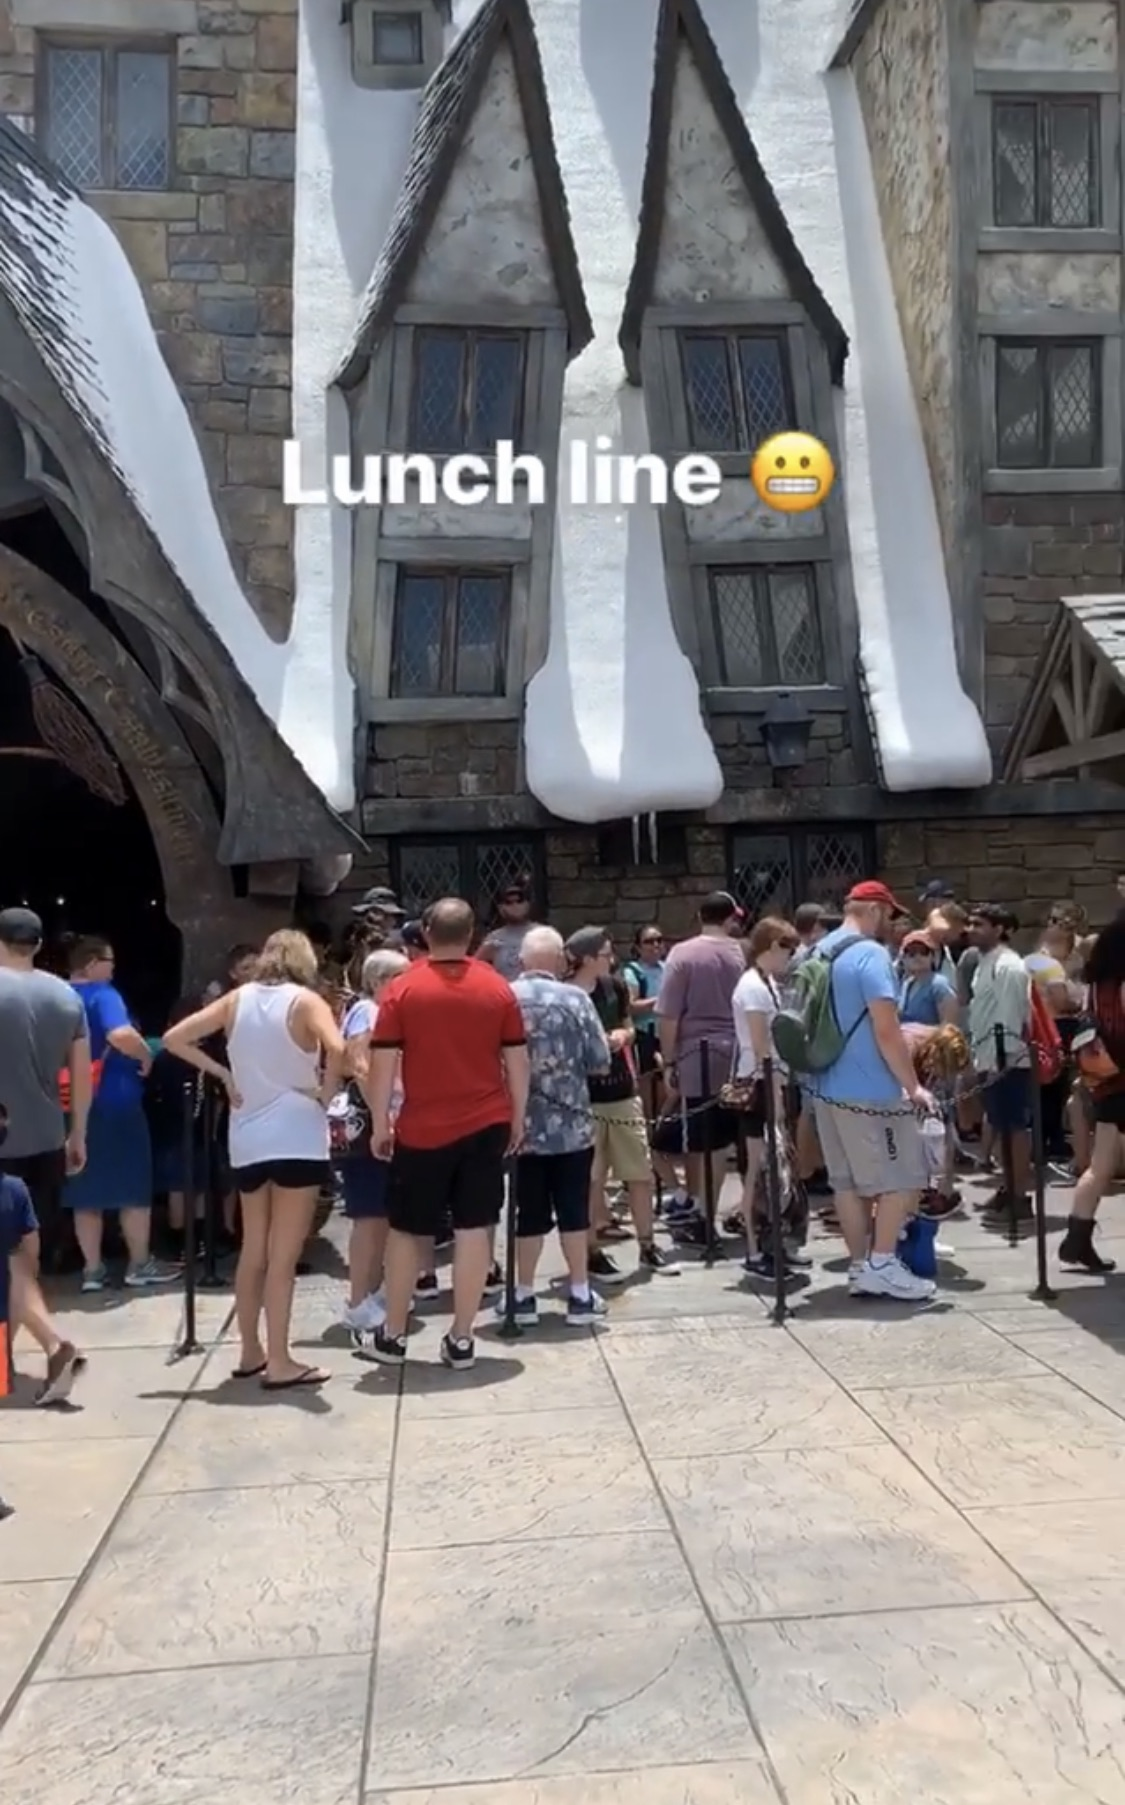 universal islands of adventure one day itinerary plan 13 lunch line.jpg